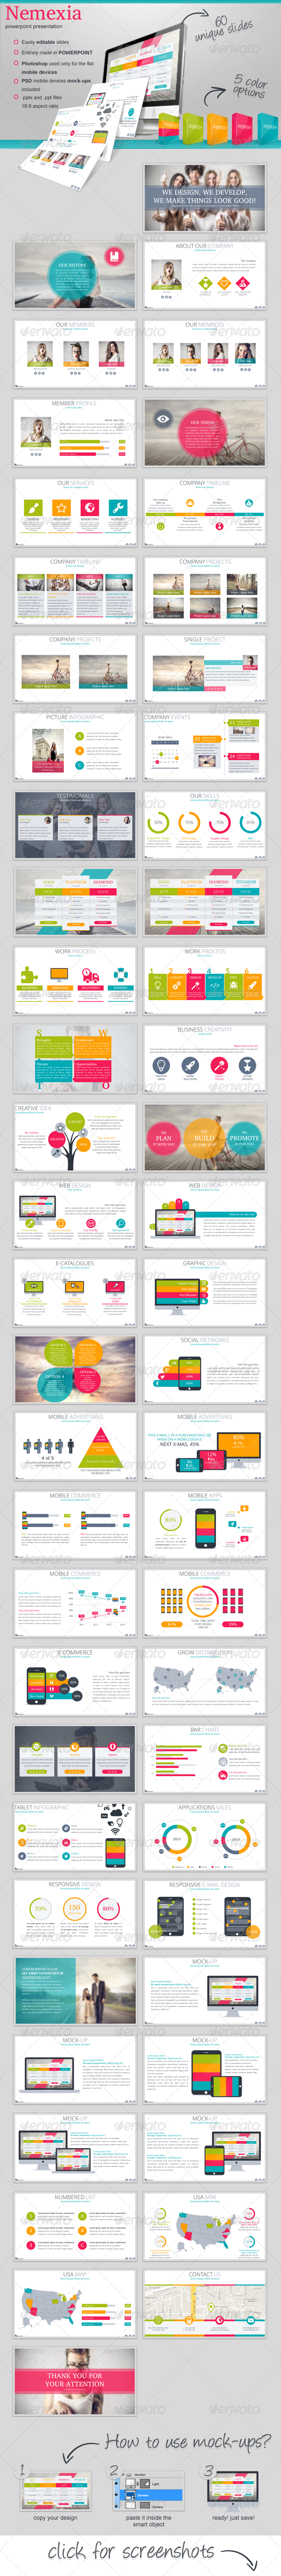 GraphicRiver Nemexia Powerpoint Presentation 7810580